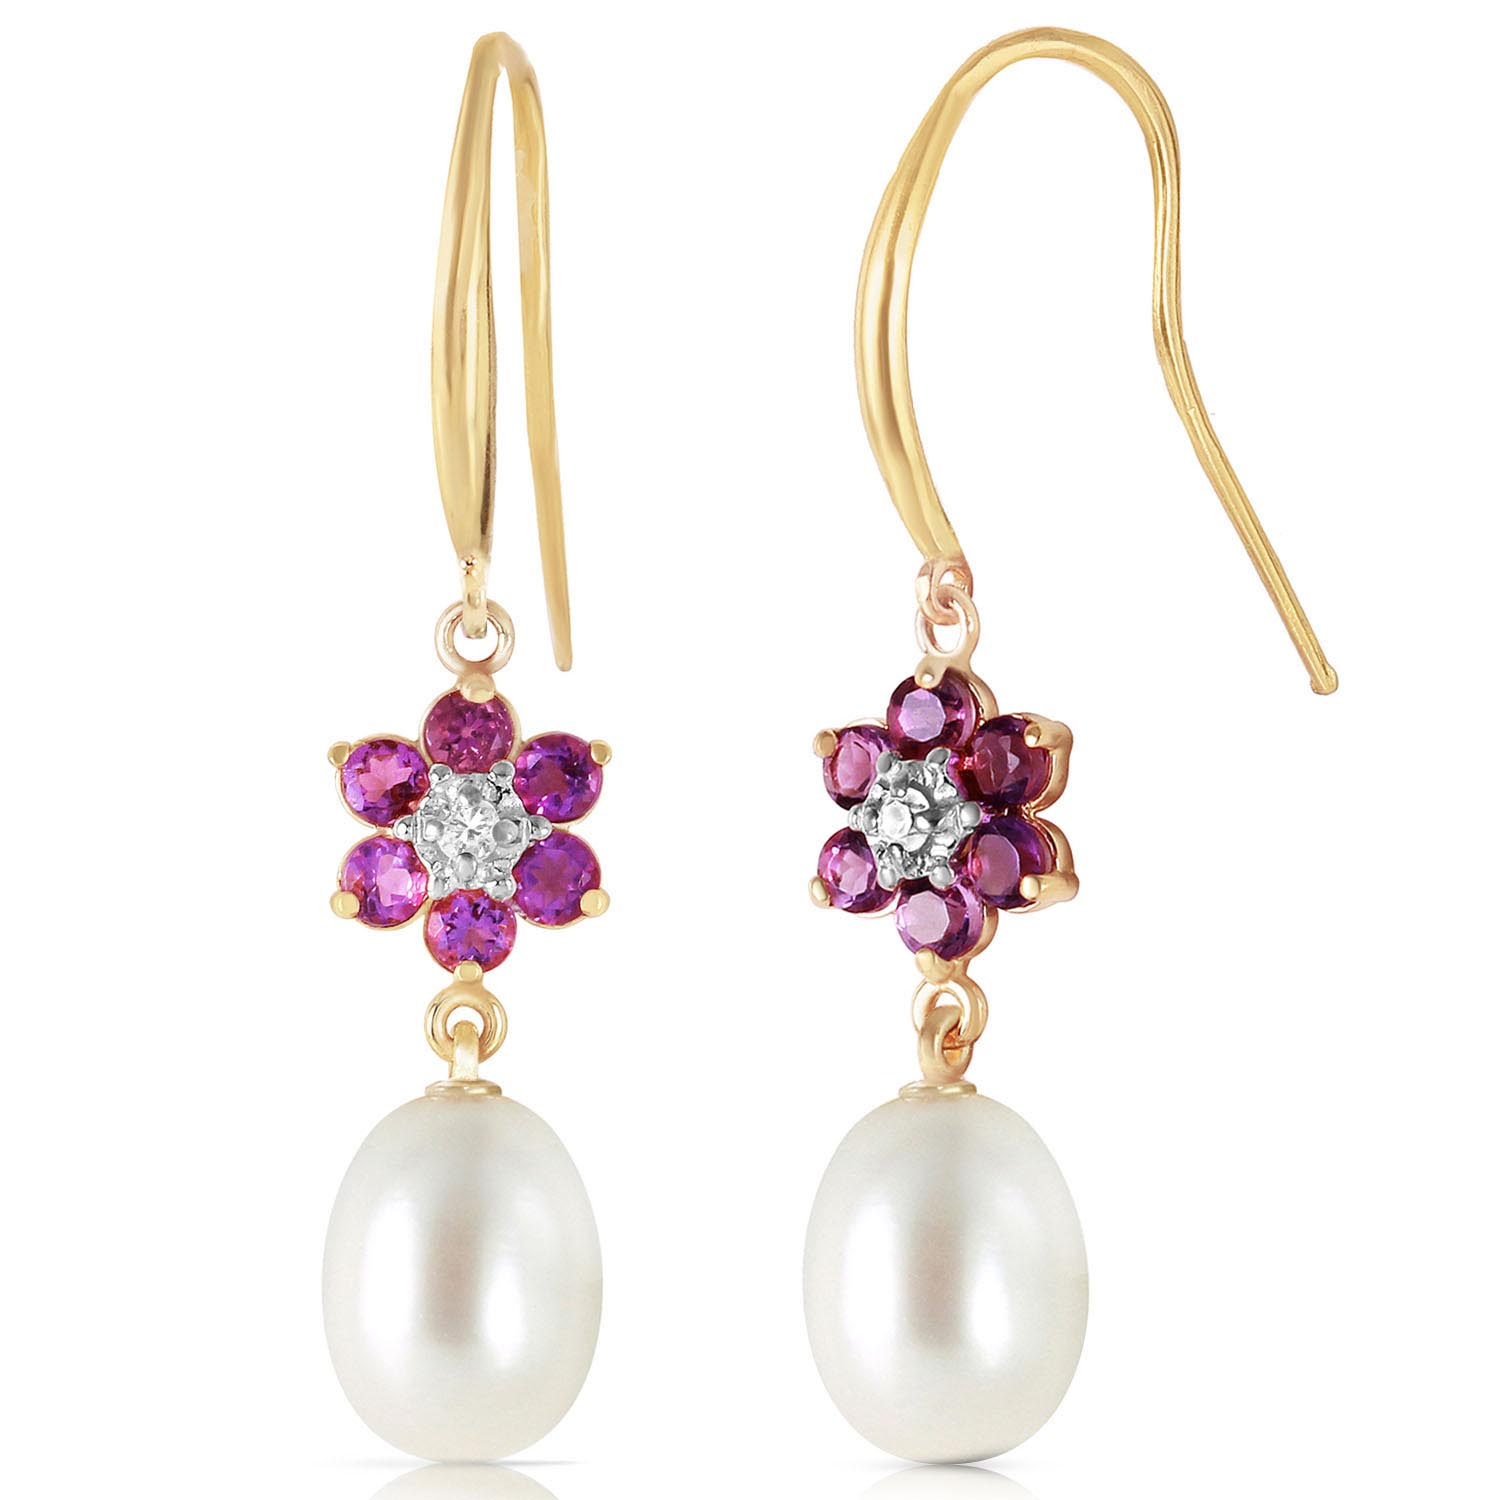 Pearl, Diamond & Amethyst Daisy Chain Drop Earrings in 9ct Gold